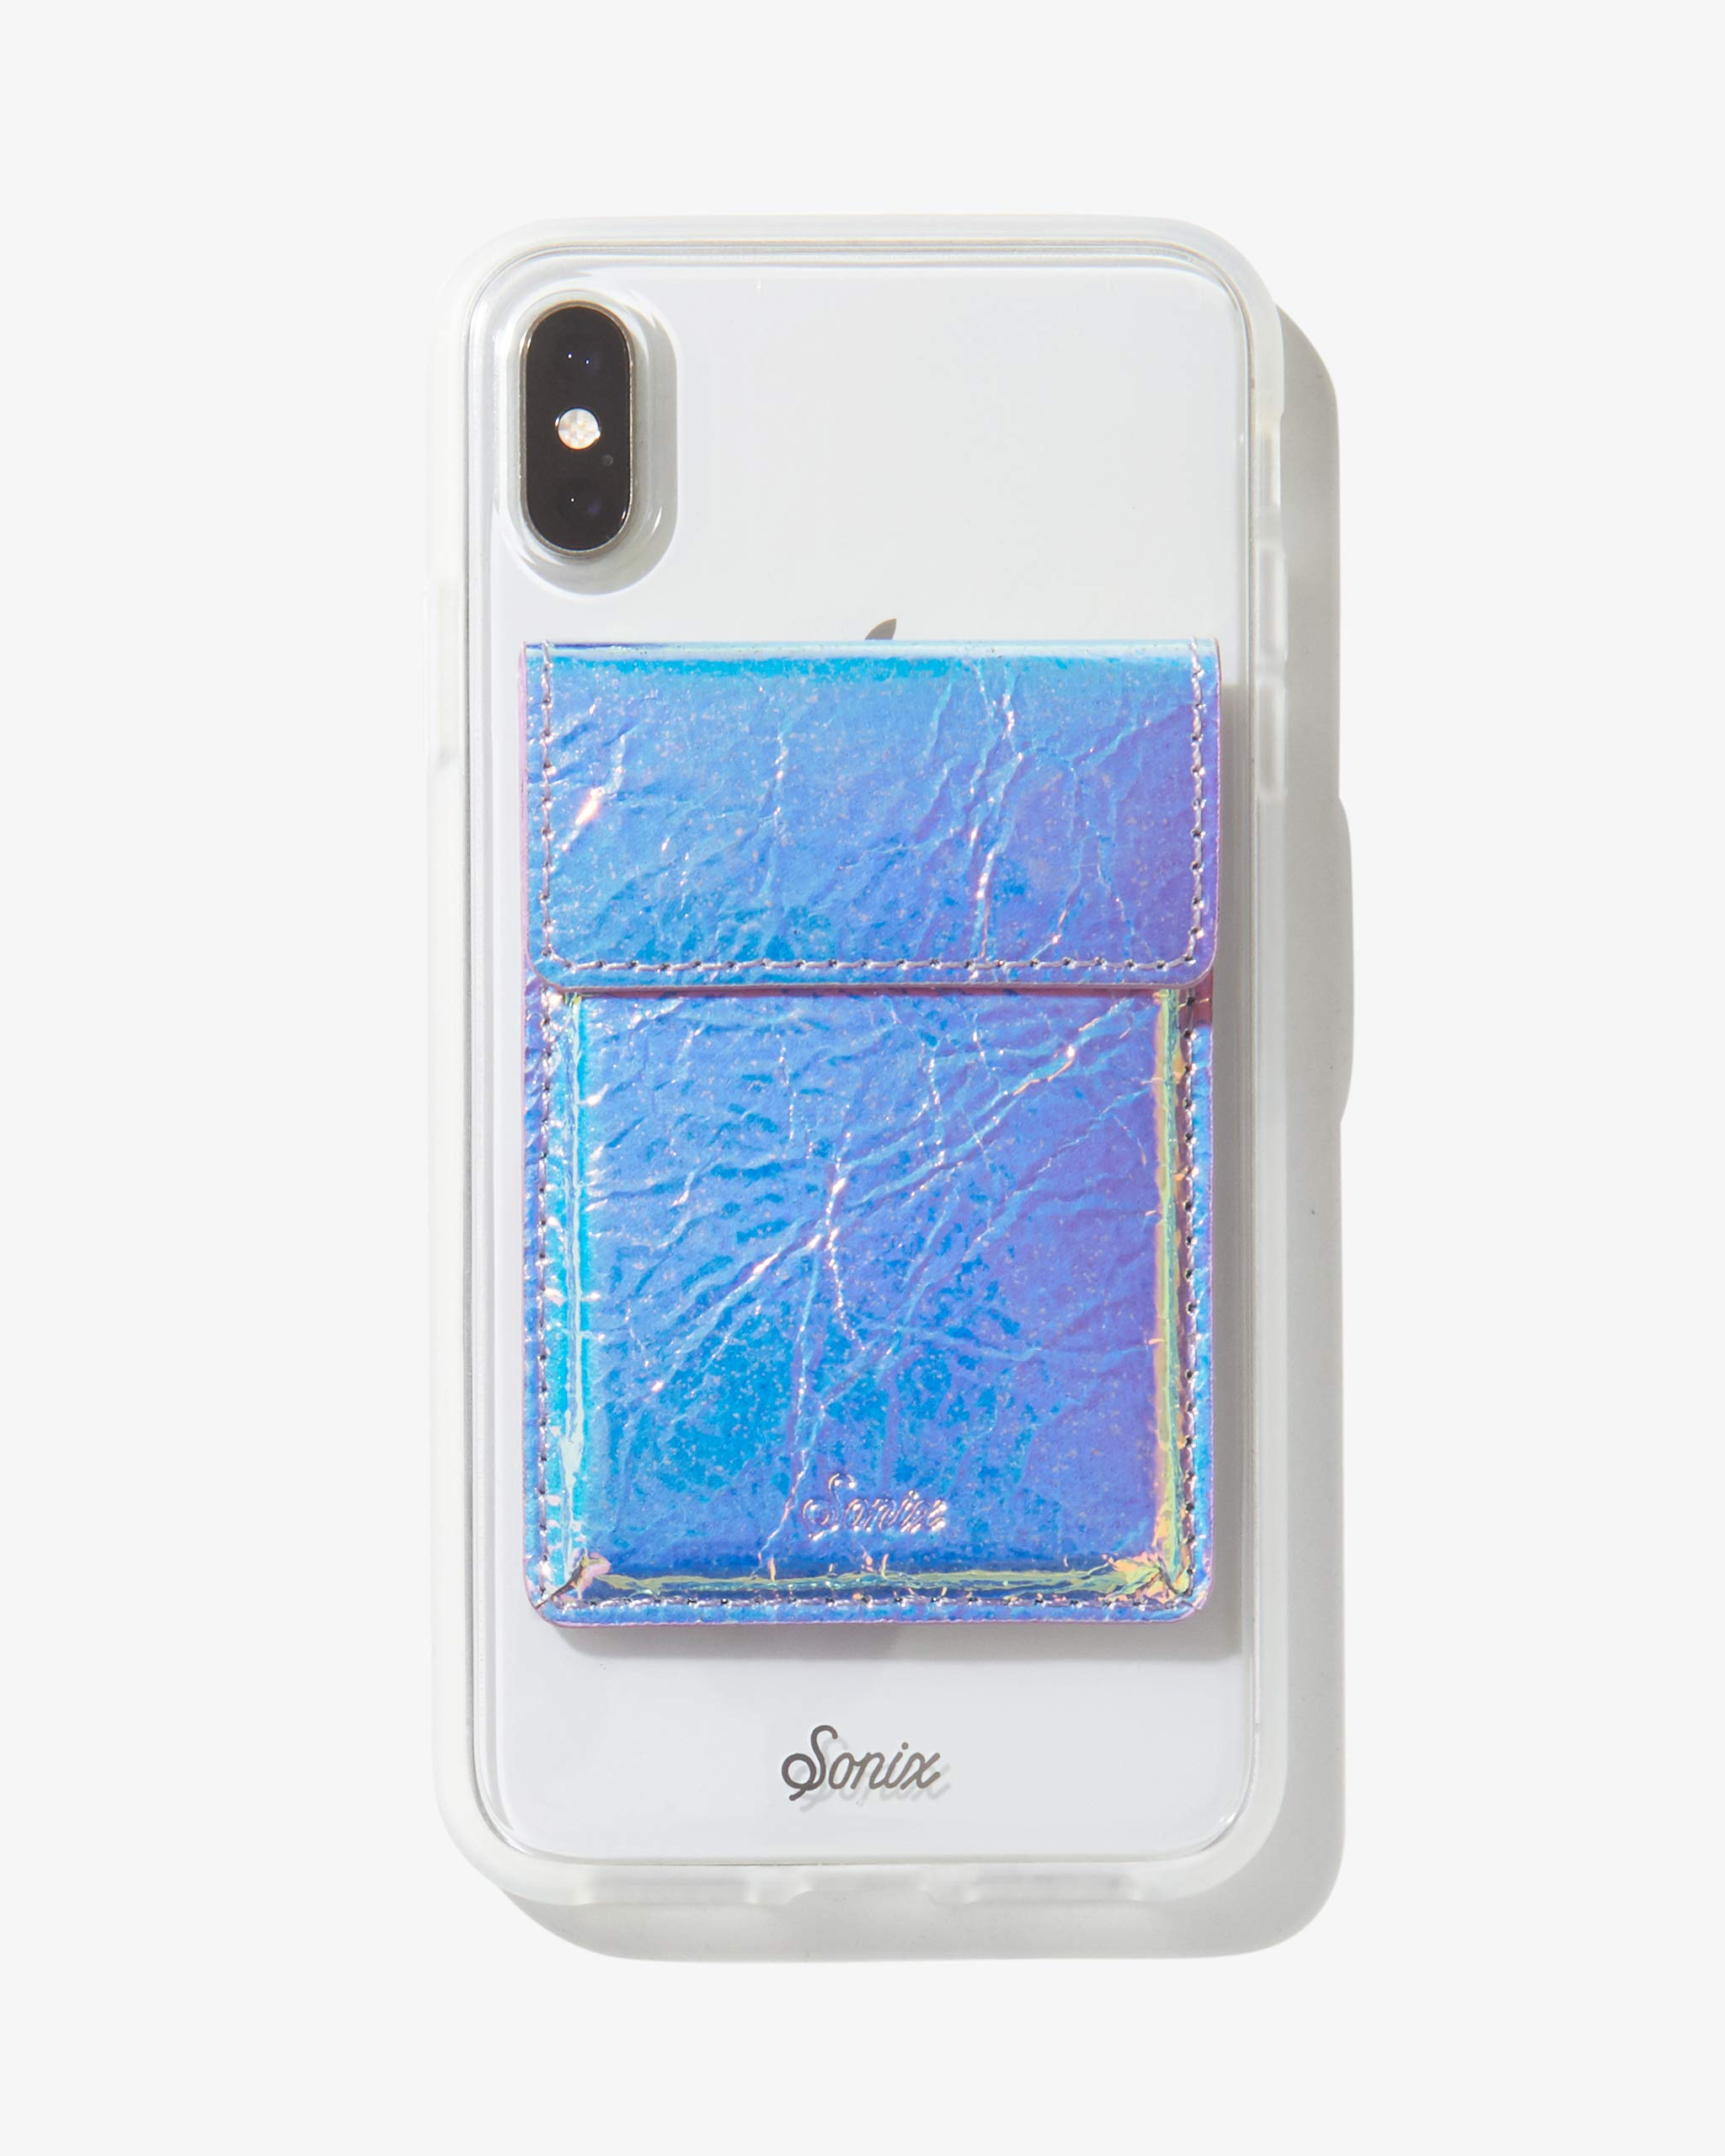 Sonix Card Holder Wallet Adhesive Phone Pocket Sticker (Holographic Leather) by Sonix